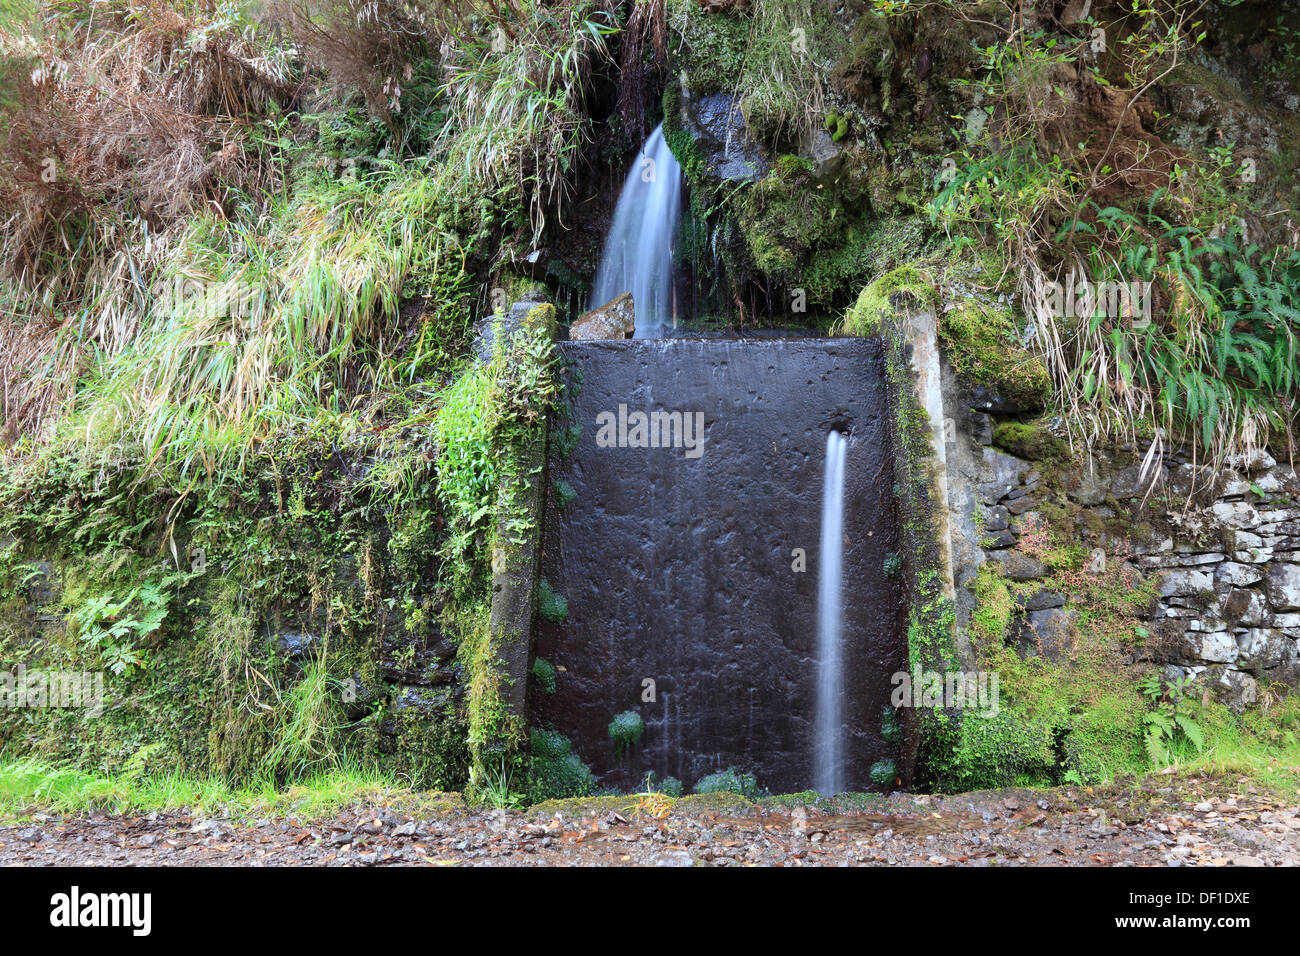 Madeira island, landscape, field trips Rabacal, the Levada do Risco to 25 Fontes, waterfalls, scenery along the Levada hiking tr - Stock Image